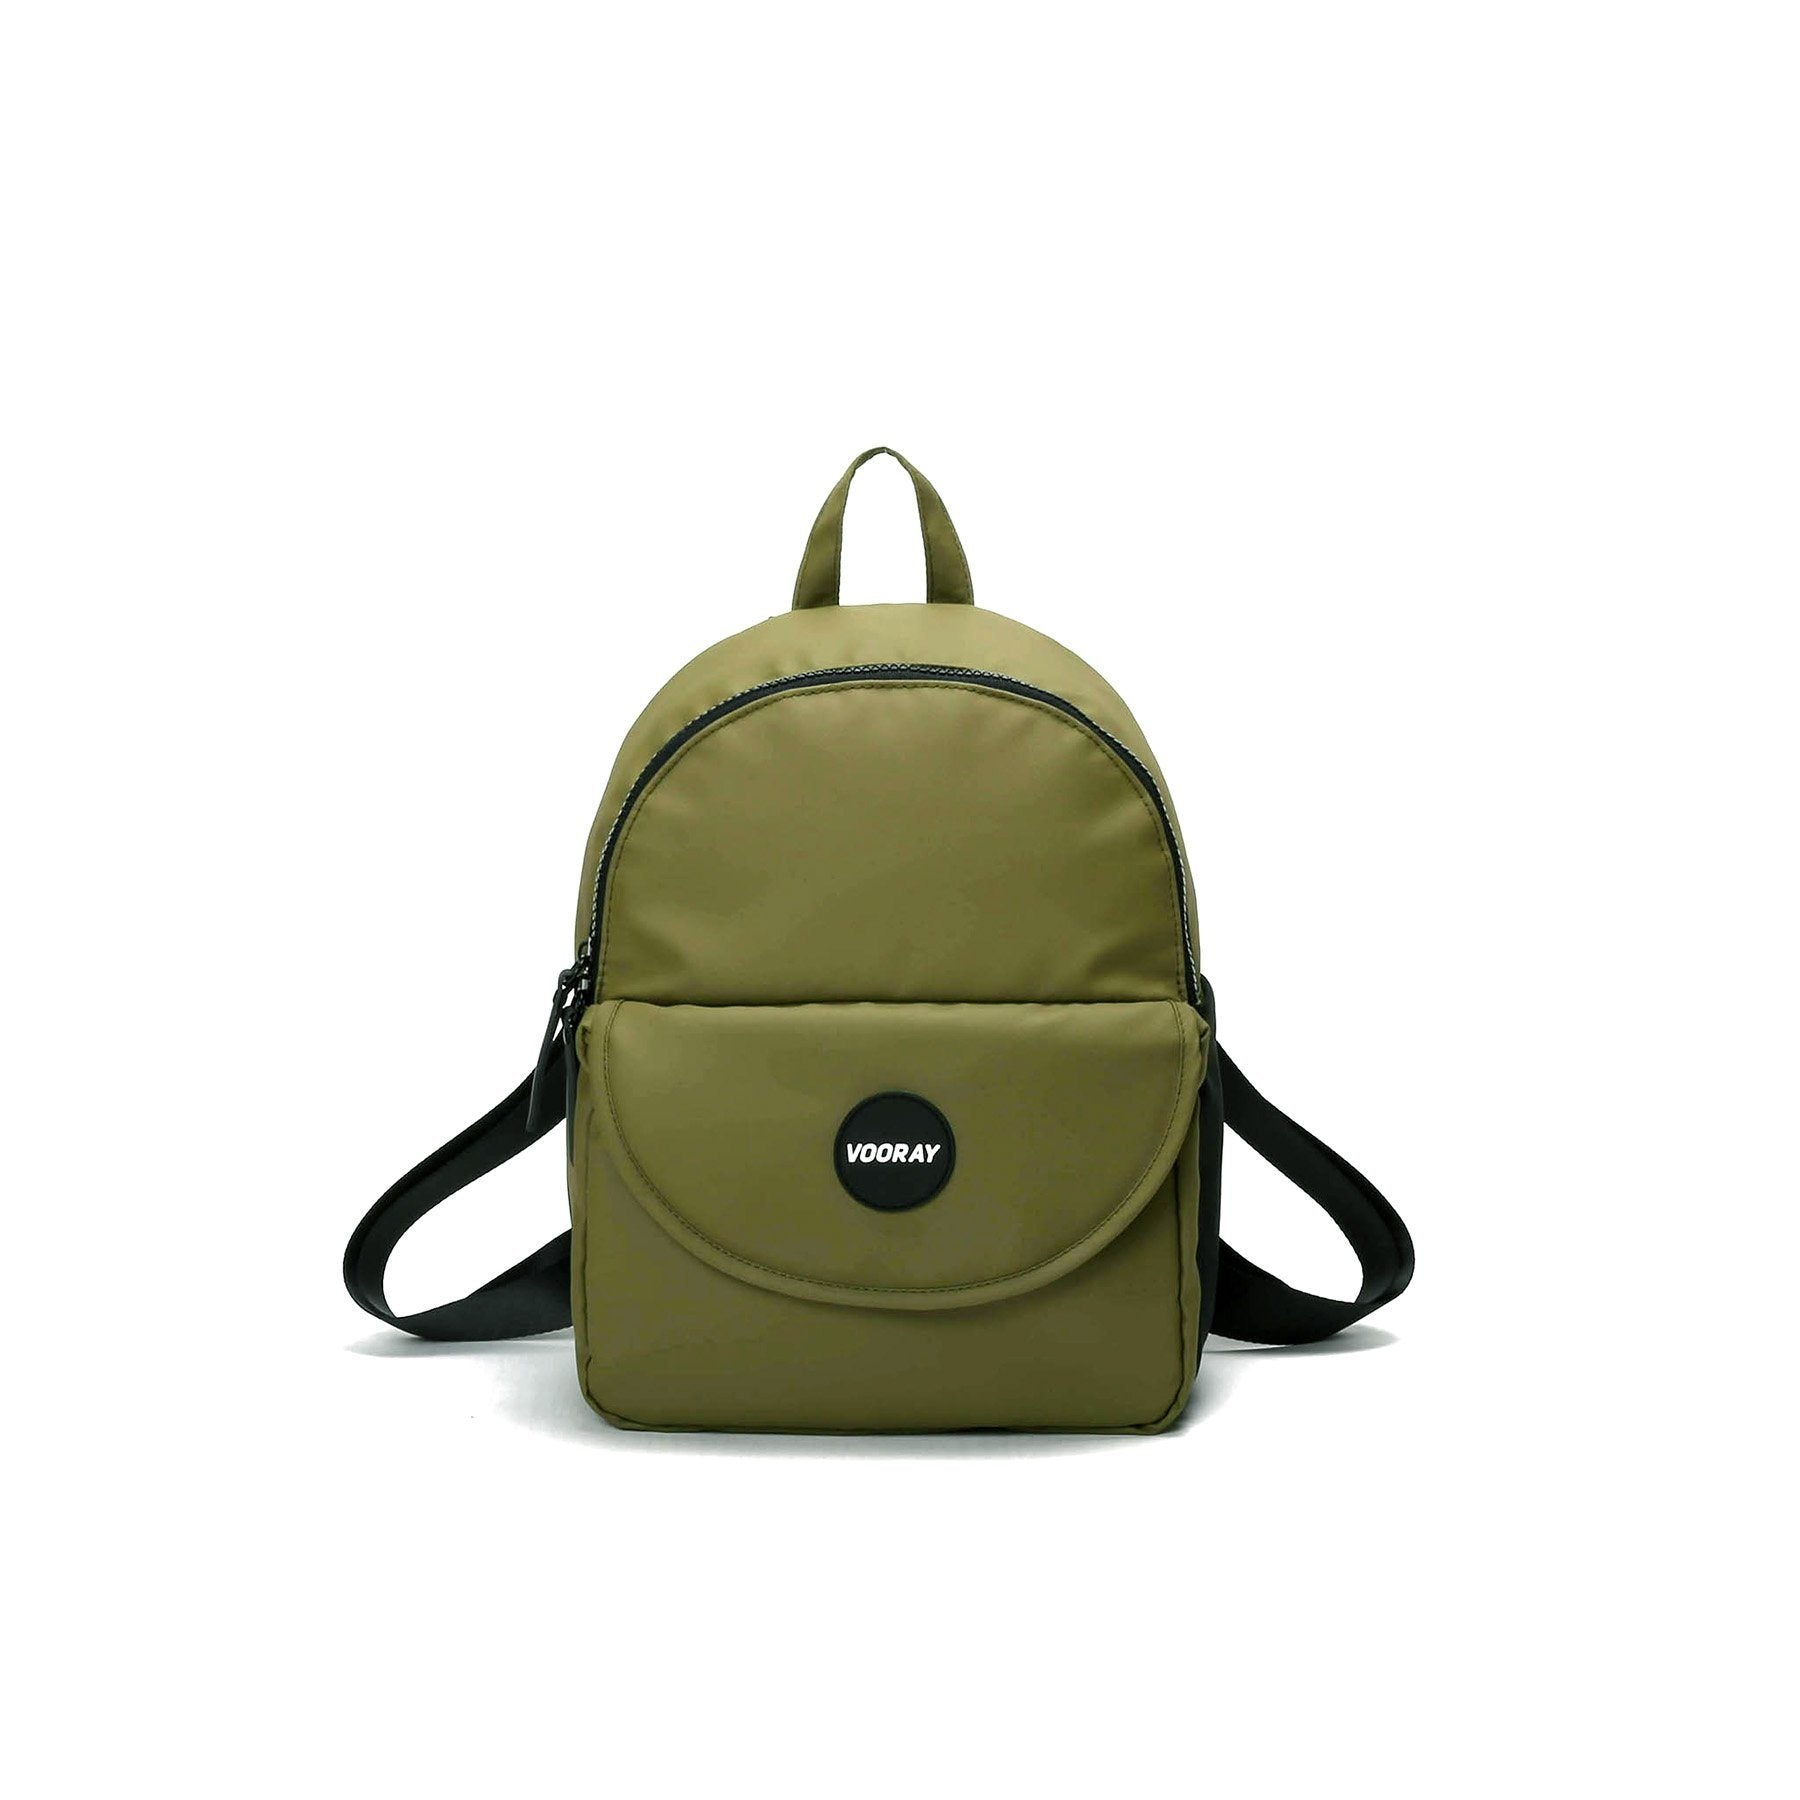 Vooray Lexi Backpack- Olive Green